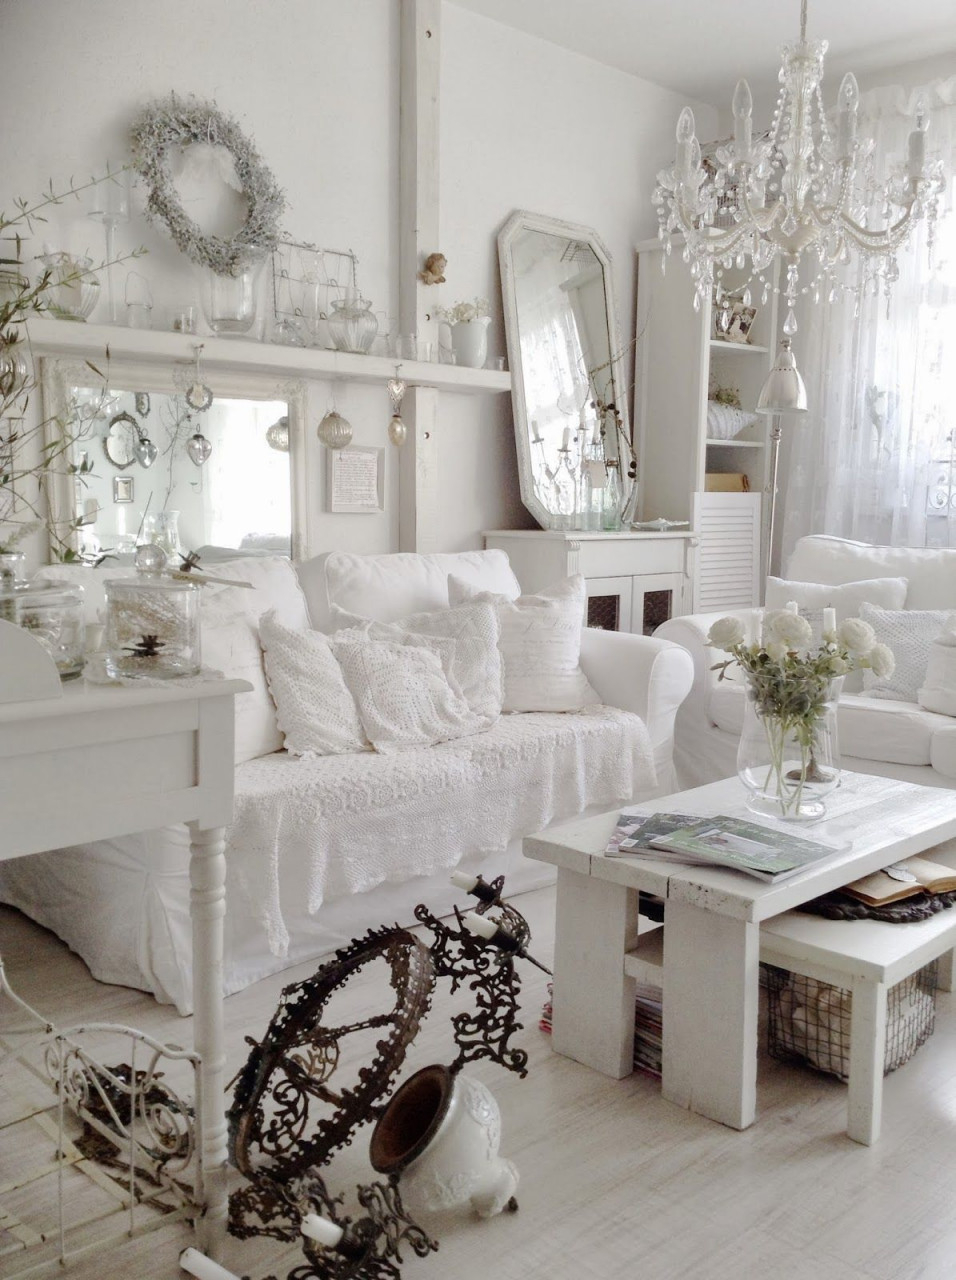 Dreamy Townhouse Little Insight Into Our Living Room  Weiß von Shabby Chic Deko Wohnzimmer Photo